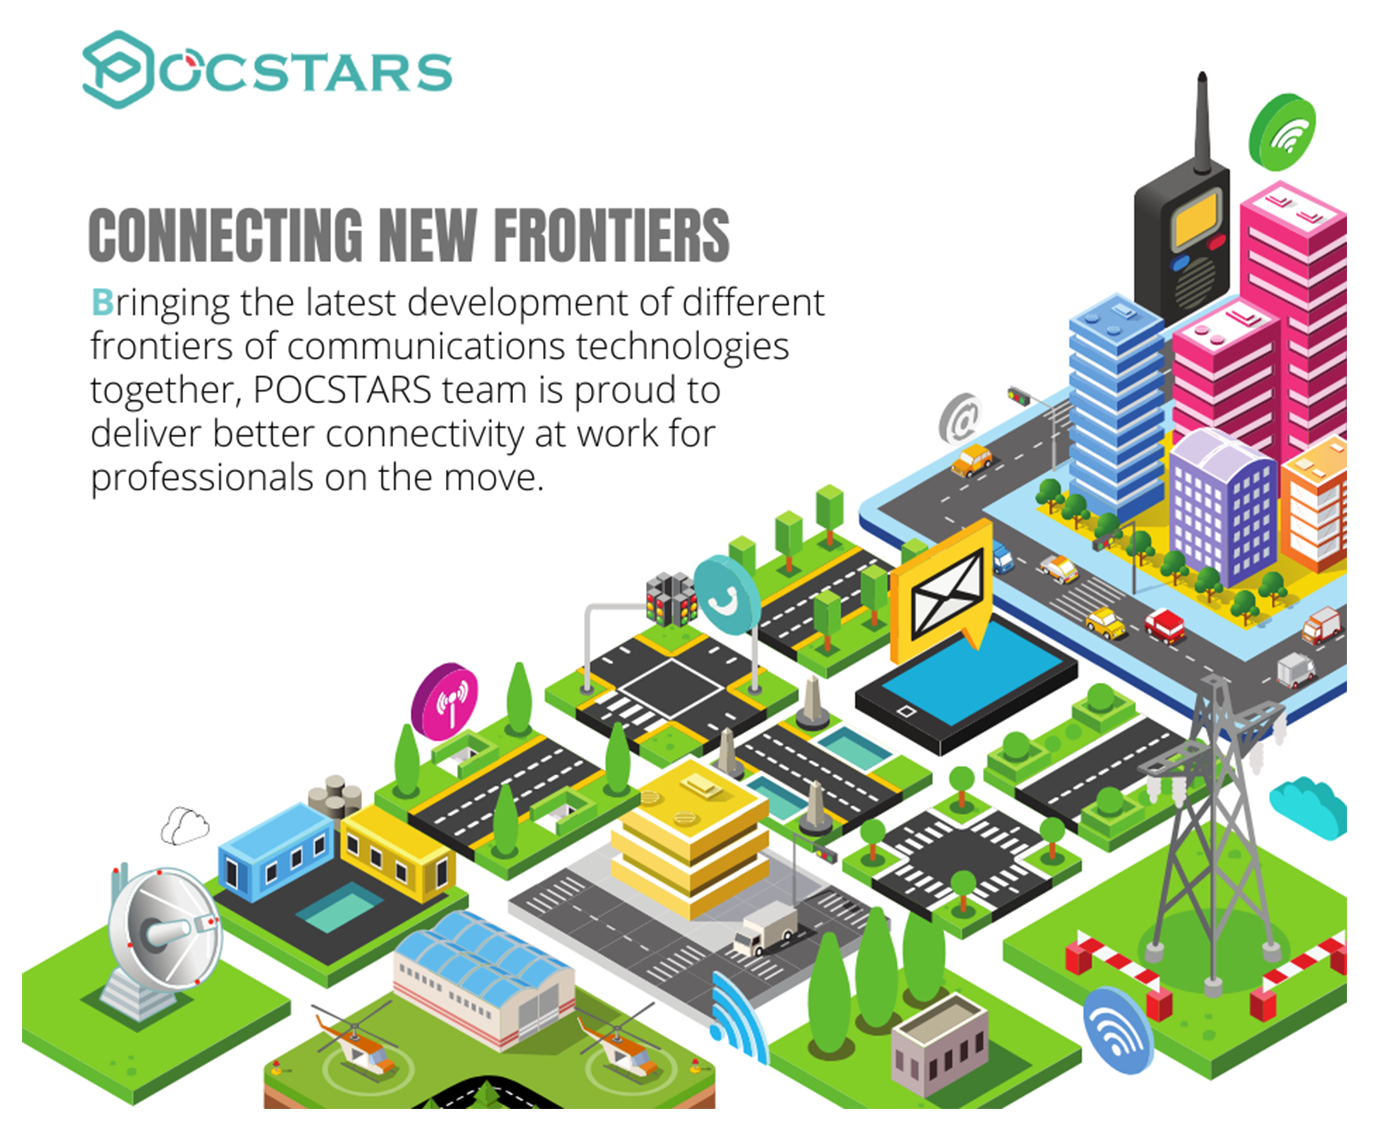 POCSTARS Connecting New Frontiers